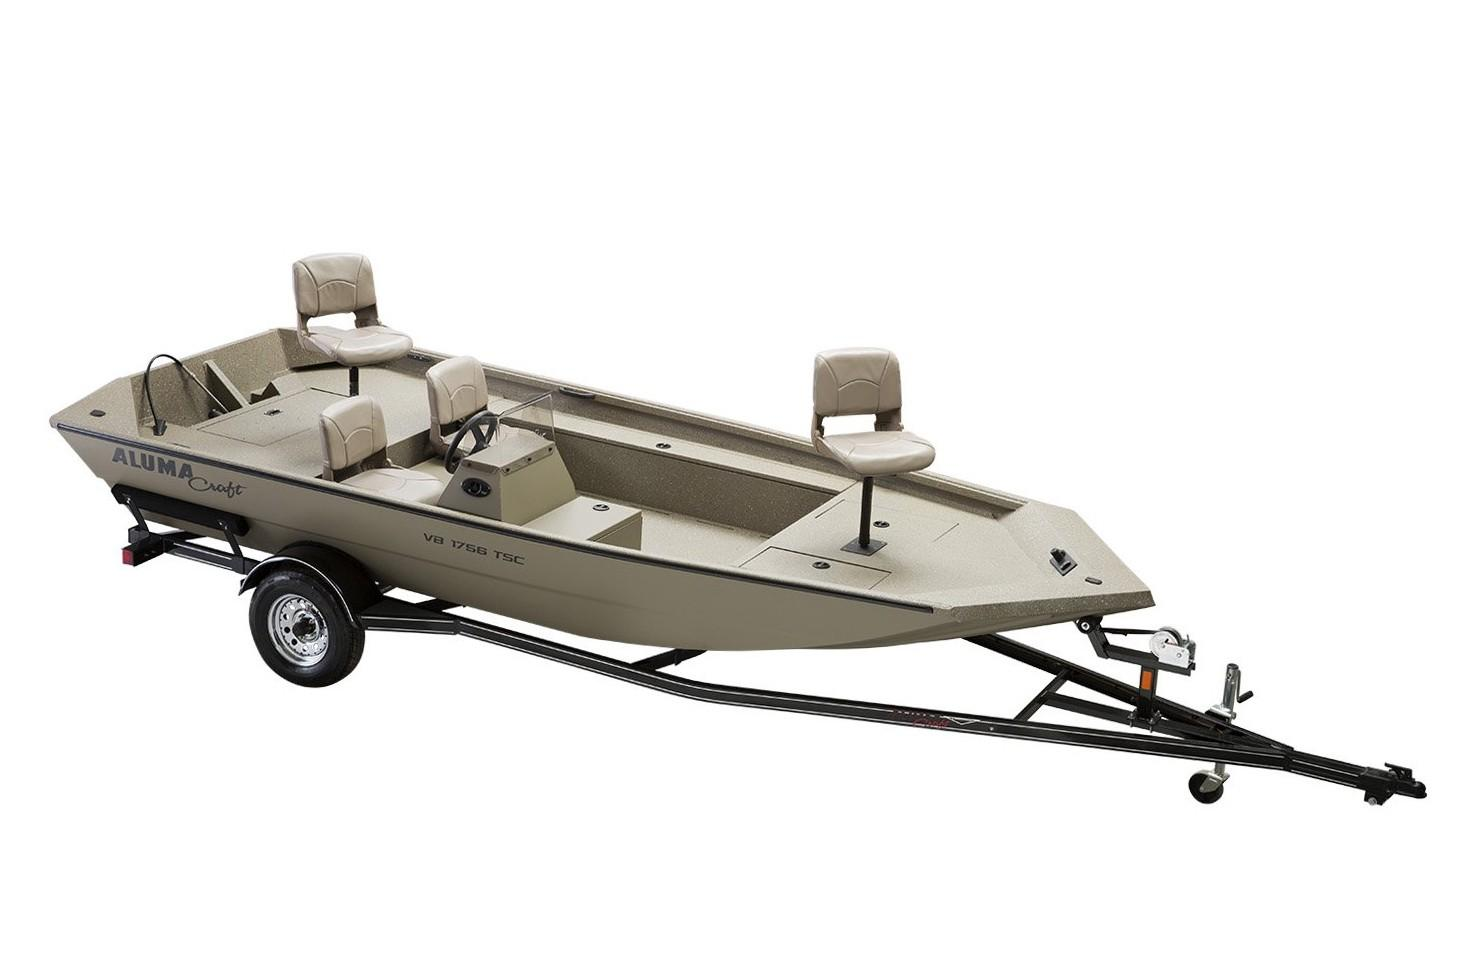 2019 Alumacraft MV 1756 AW SC in Lake City, Florida - Photo 1